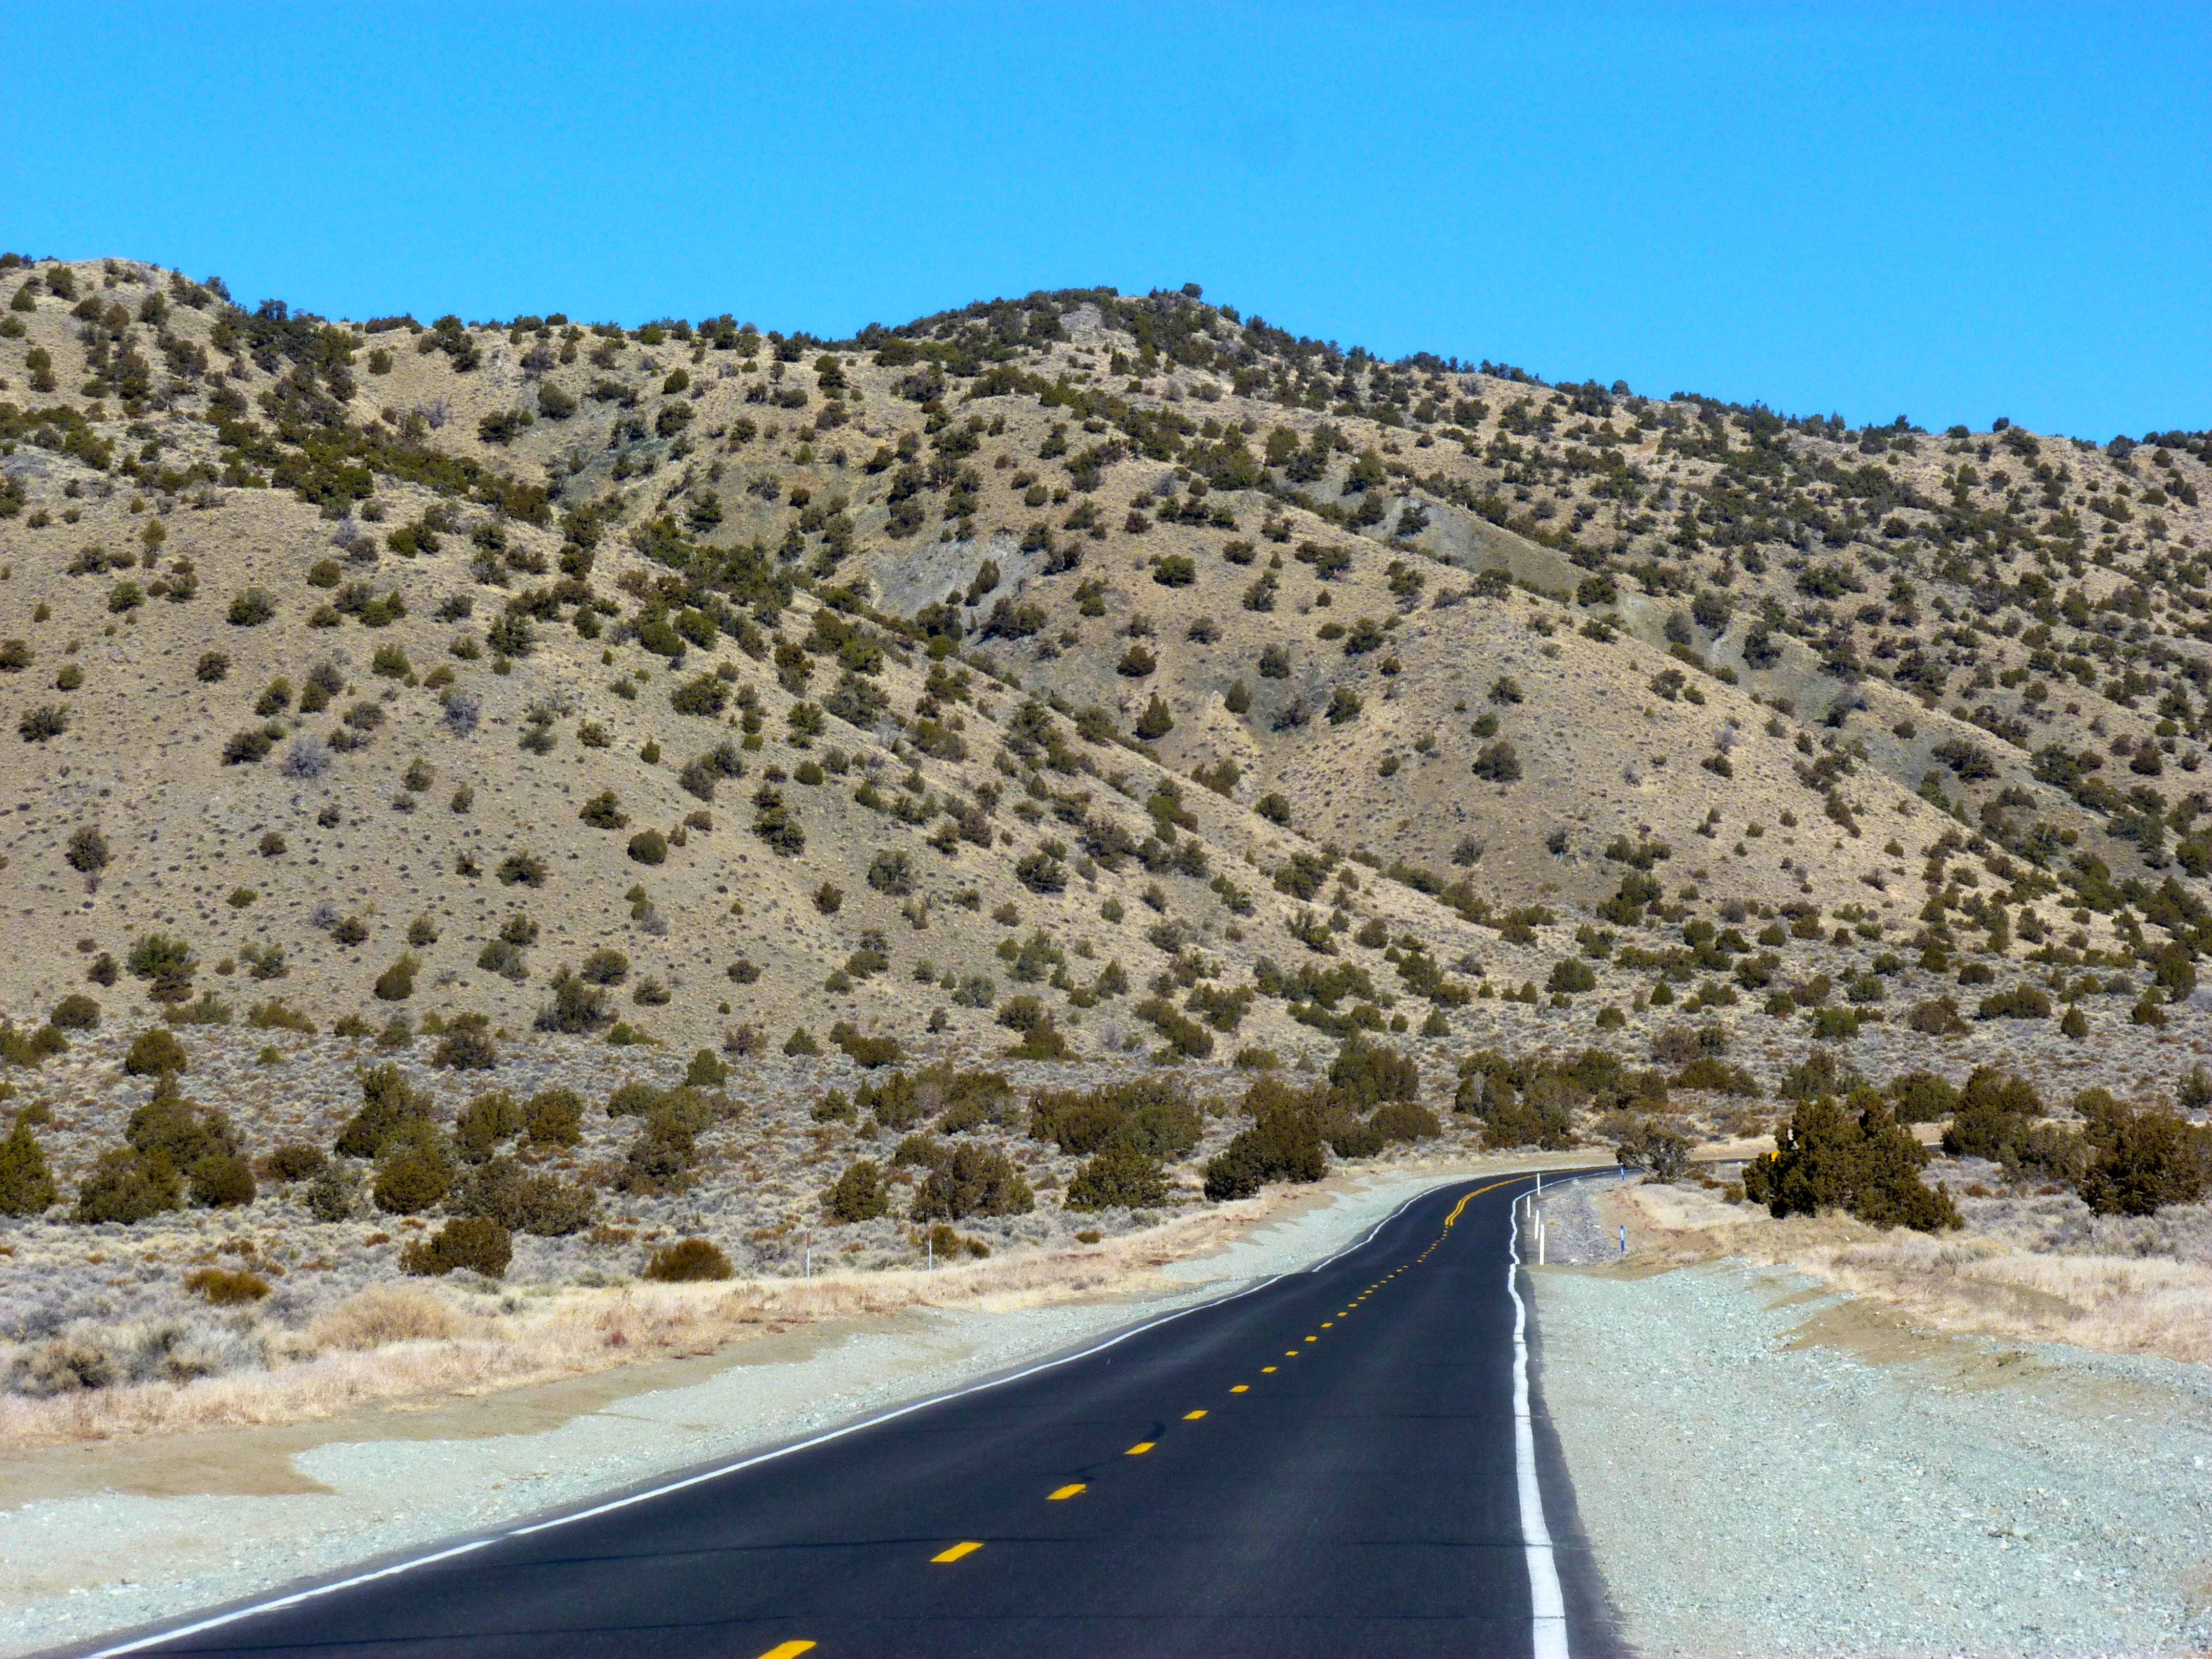 Northern Lemmon Valley Peaks – Peak 6041 and Peak 6021